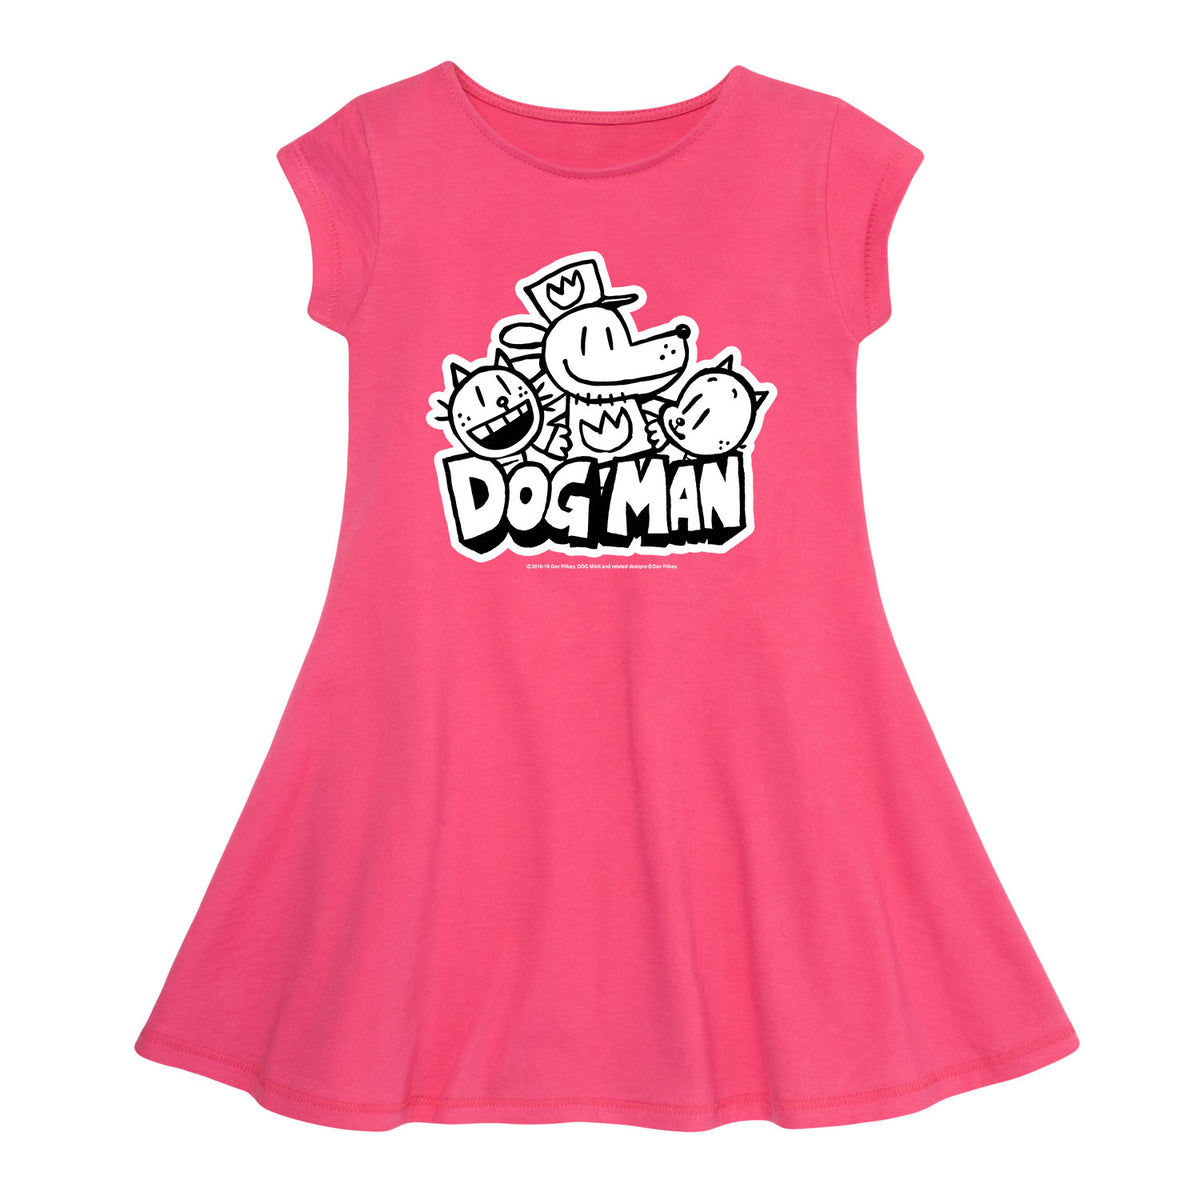 Dog Man Black and White - Toddler Fit And Flare Dress